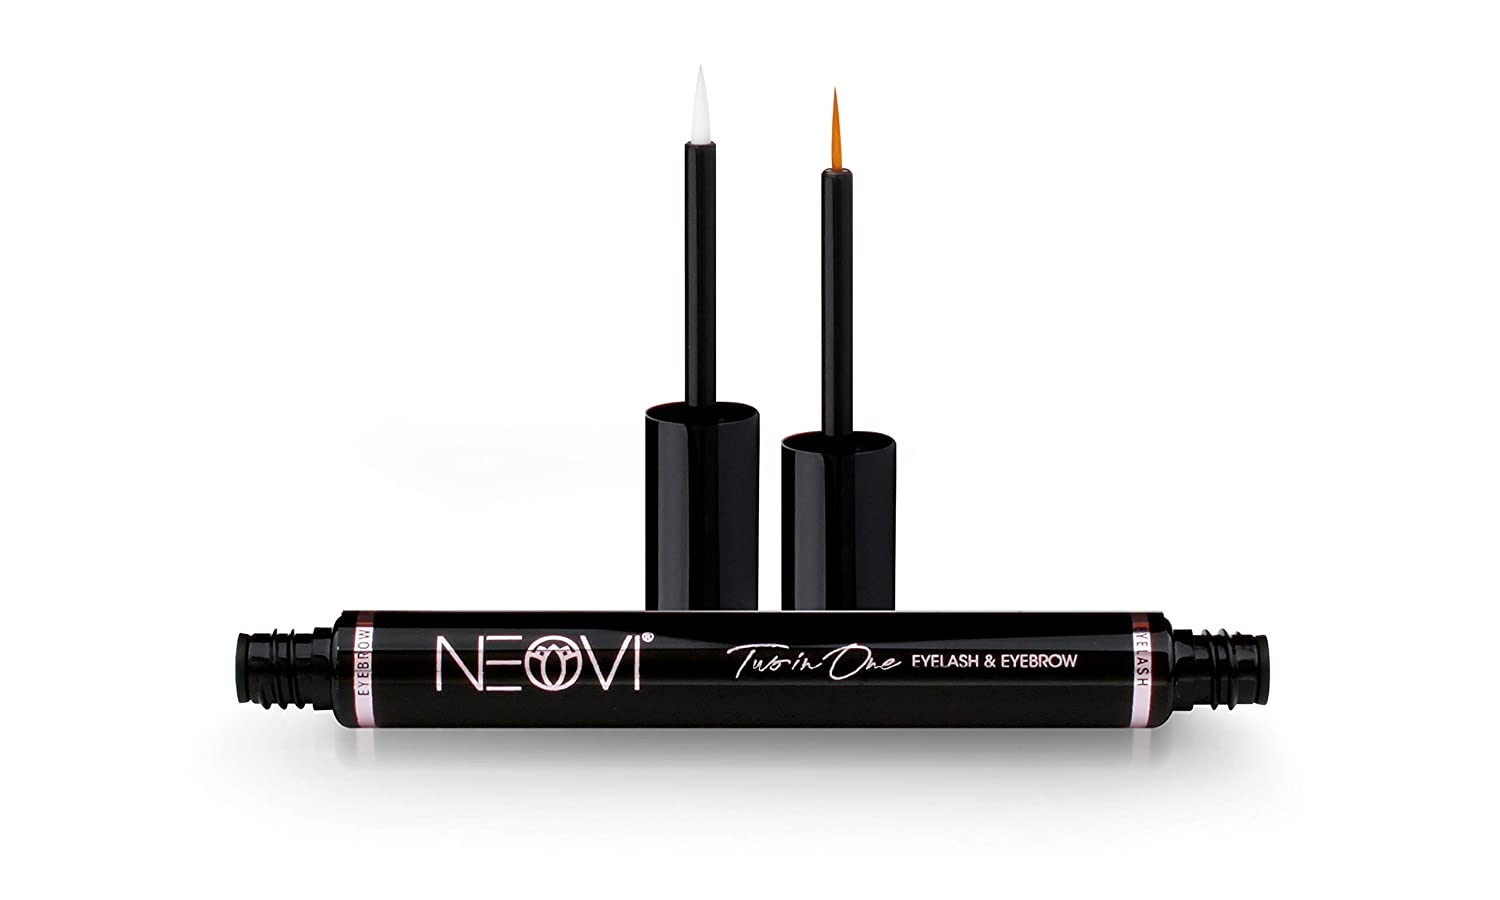 """NEOVI Eyelash + Eyebrow Enhancing ACTIVATING Growth Serum with HYALURON For Fuller, Longer, Thicker, Stronger, Healthier, Luscious Lashes & Brows """"DERMA-TEST Certified"""" Made in GERMANY 6 ML 0.2 Fl Oz"""